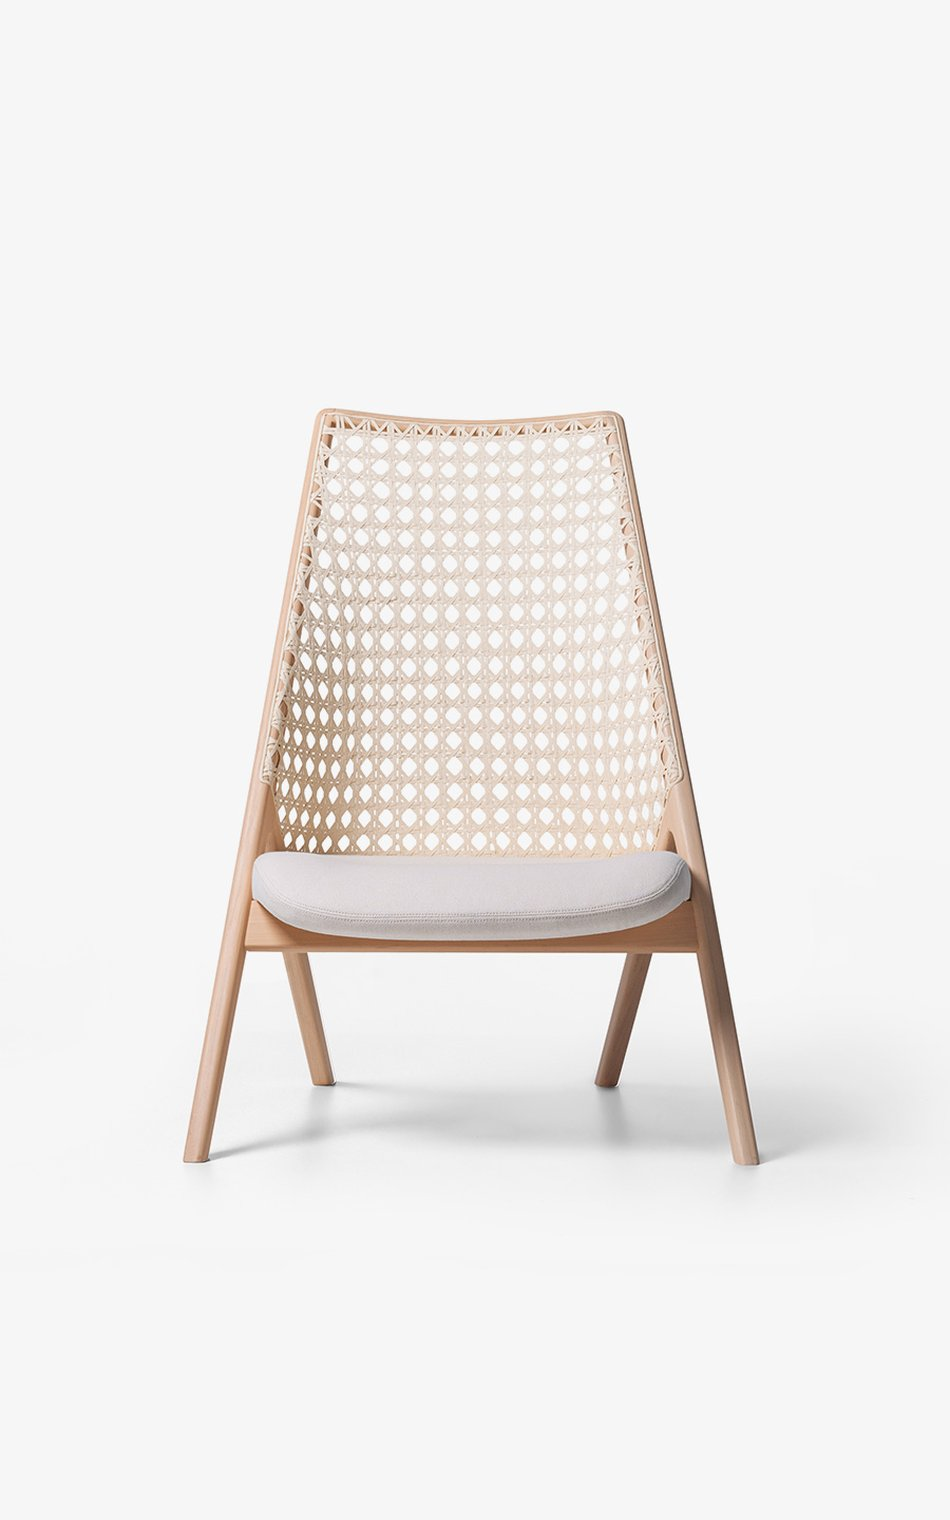 POLTRONA TELA | TELA LOUNGE CHAIR